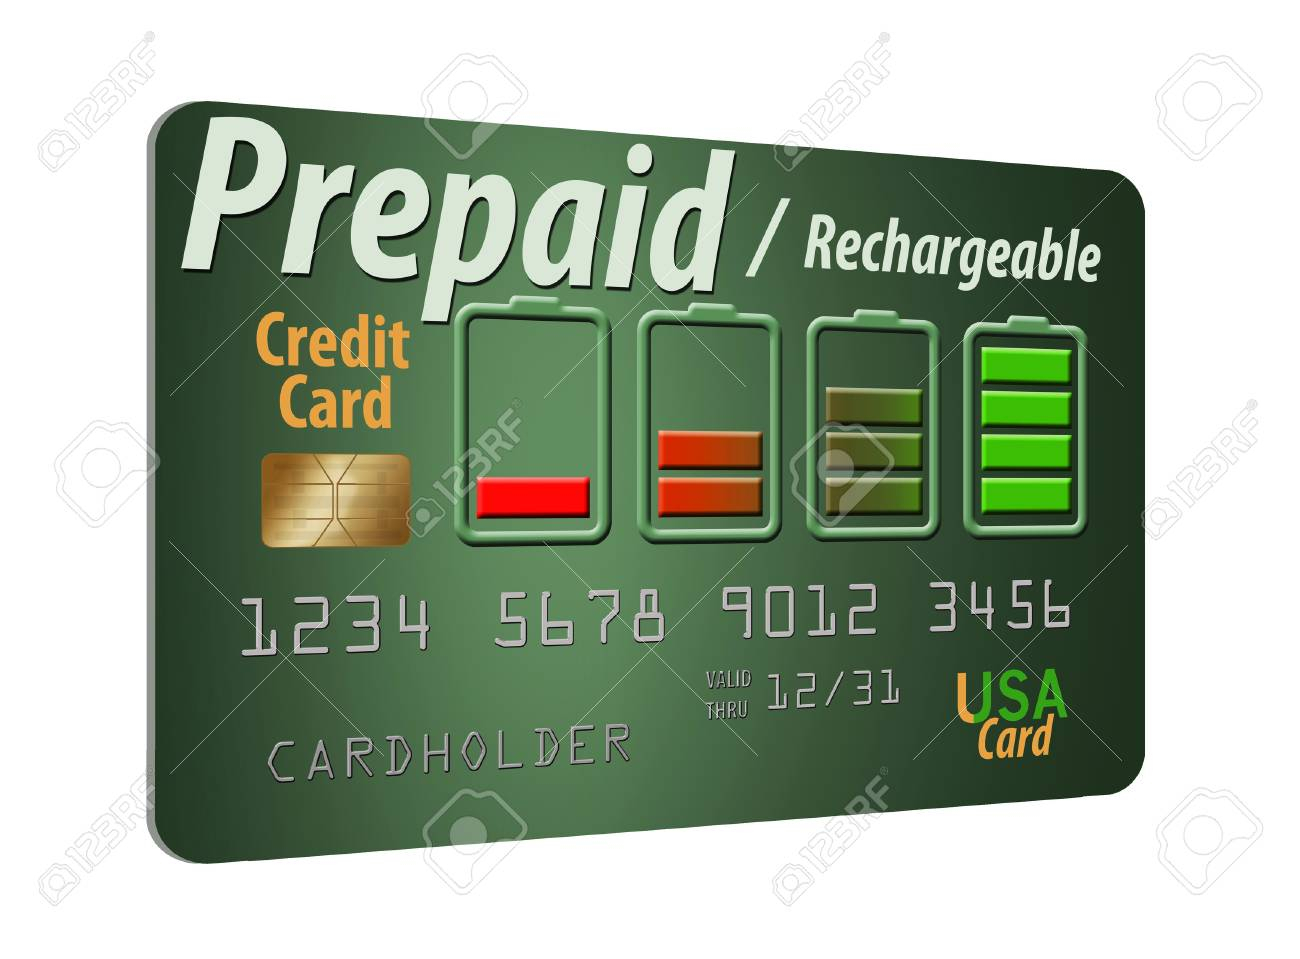 10 Fabulous Is A Secured Credit Card A Good Idea here is a rechargeable refillable prepaid credit card the recharge 2020